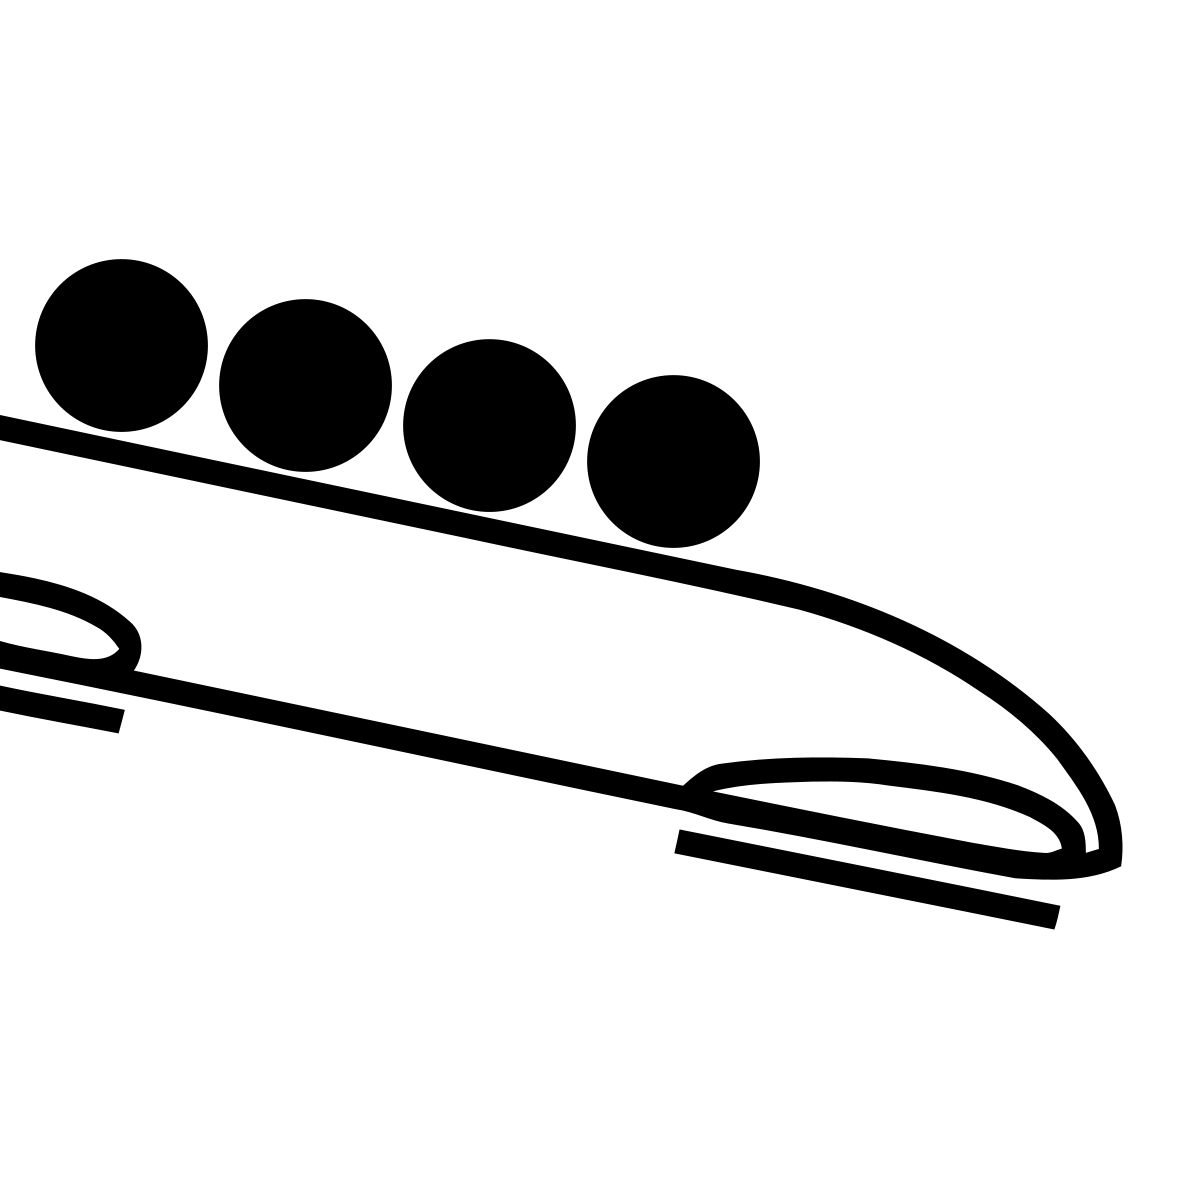 Womens Bobsled Clipart 10 Free Cliparts